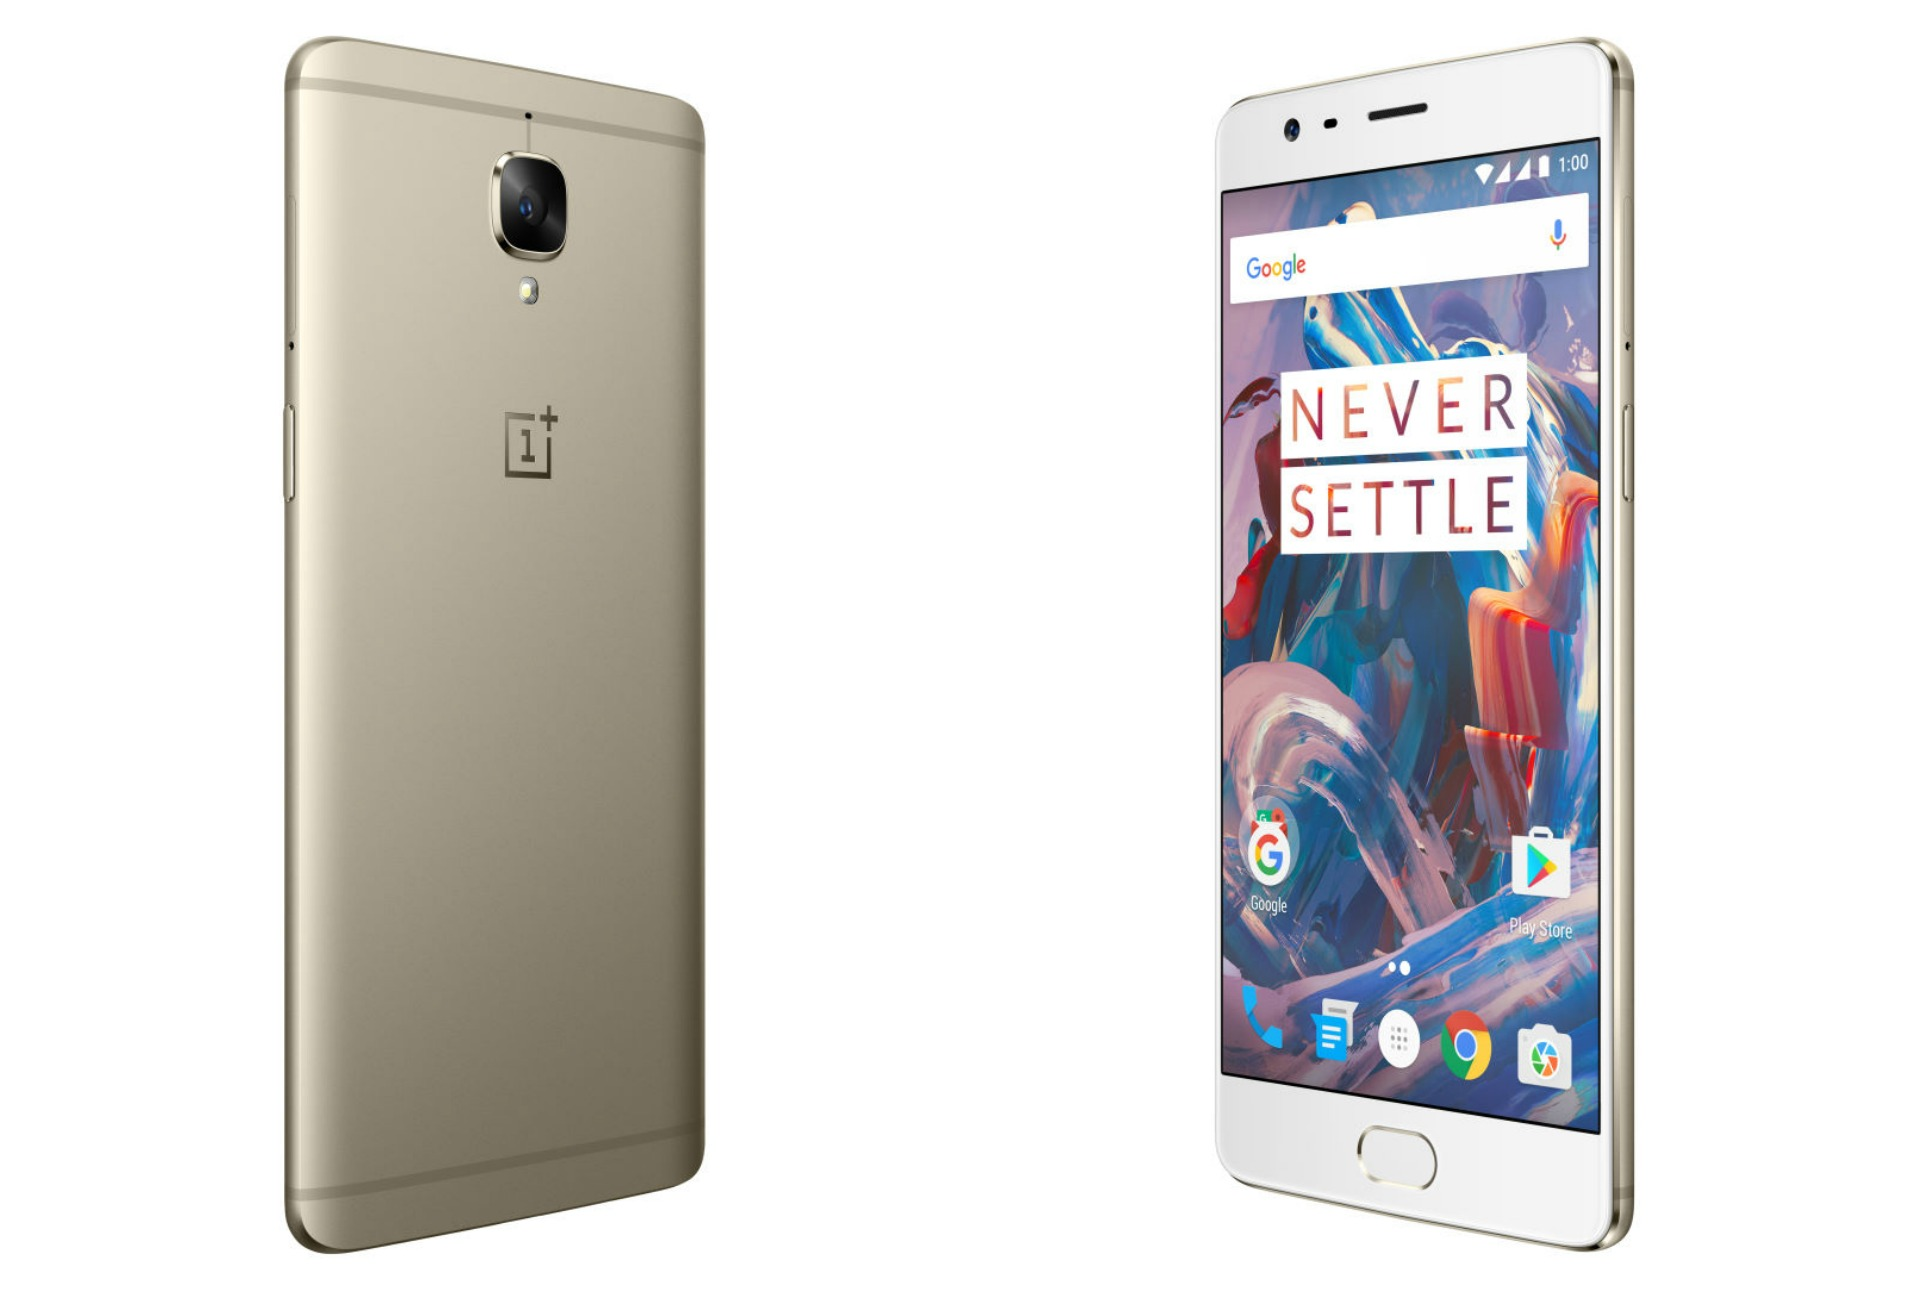 OnePlus 3 Soft Gold Variant Coming to India This Diwali 2016